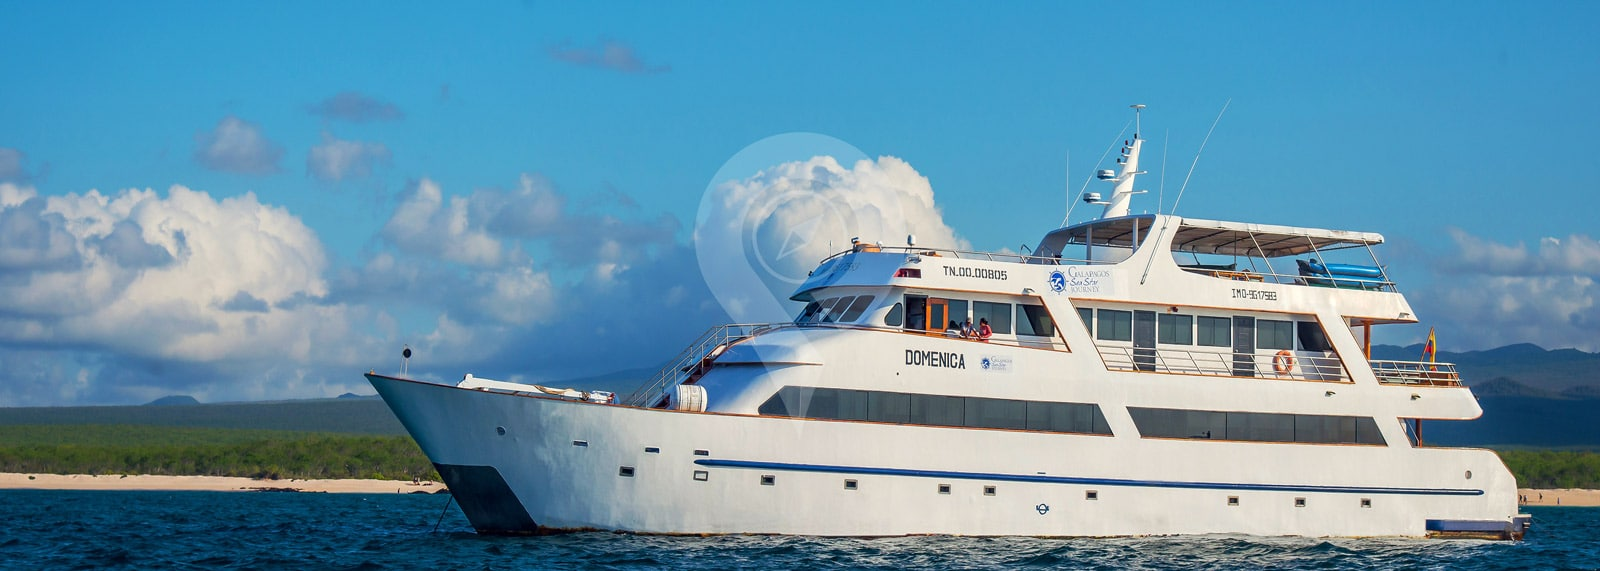 Galapagos Sea Star Journey Yacht